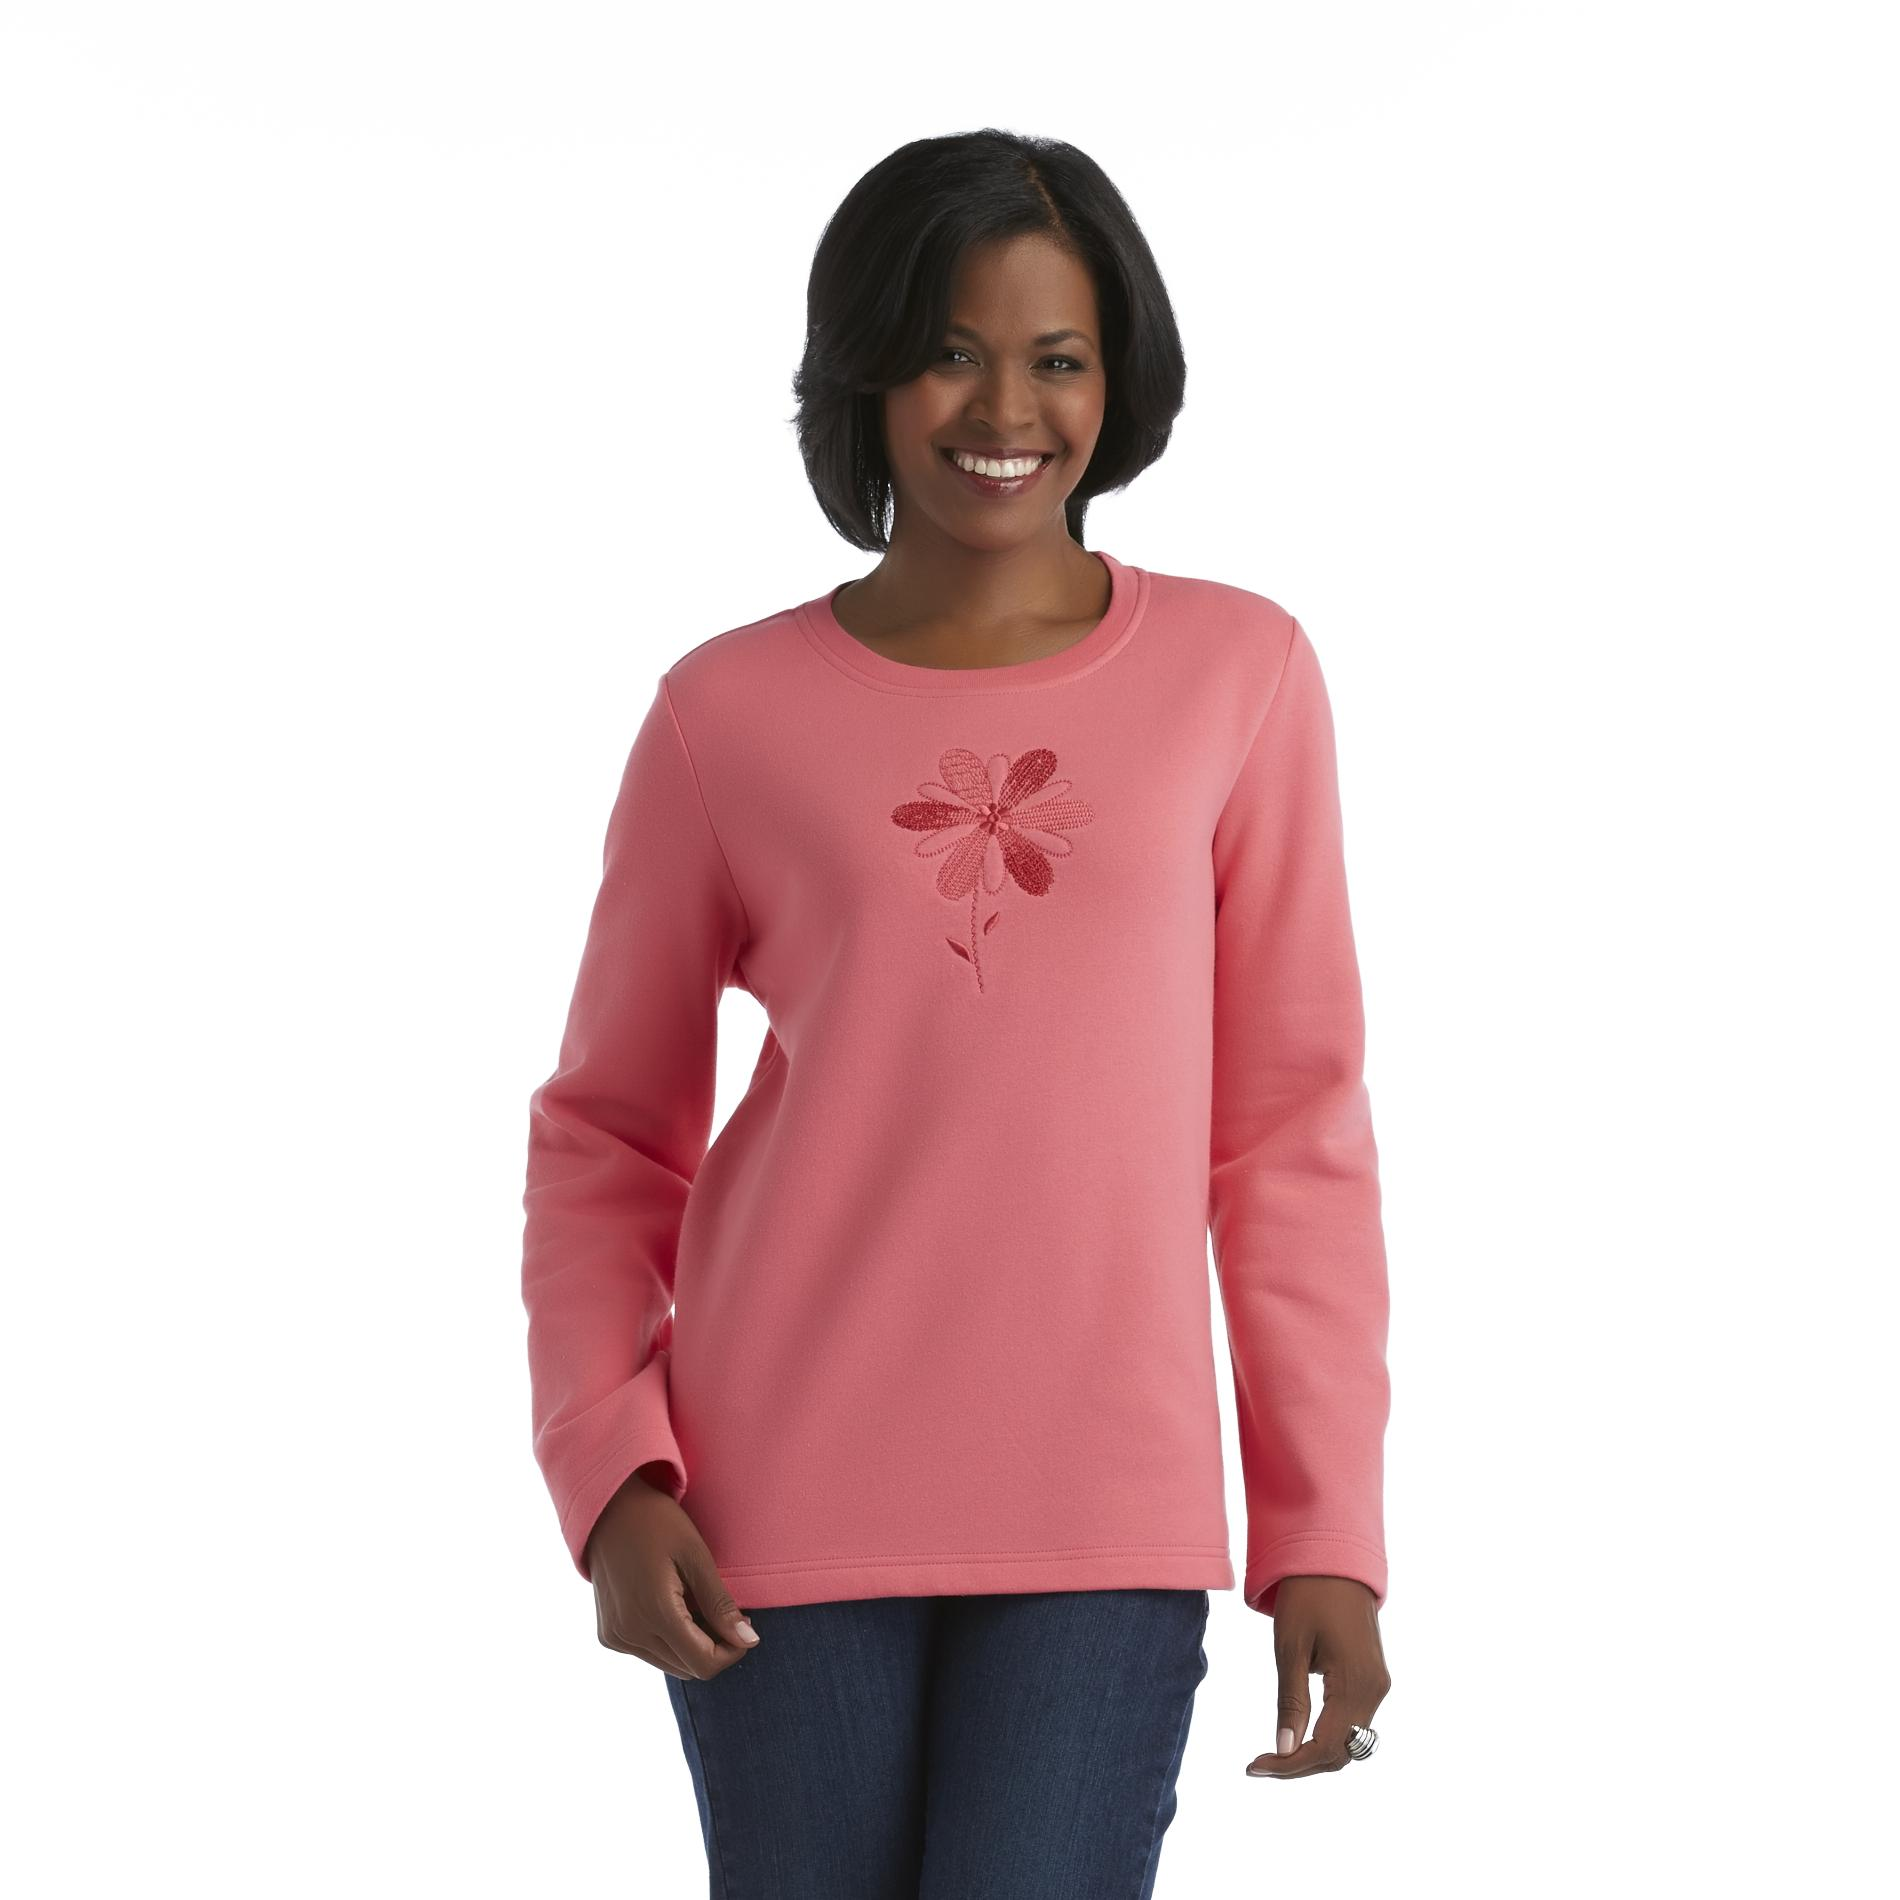 Laura Scott Women's Long-Sleeve Shirt - Flower at Sears.com